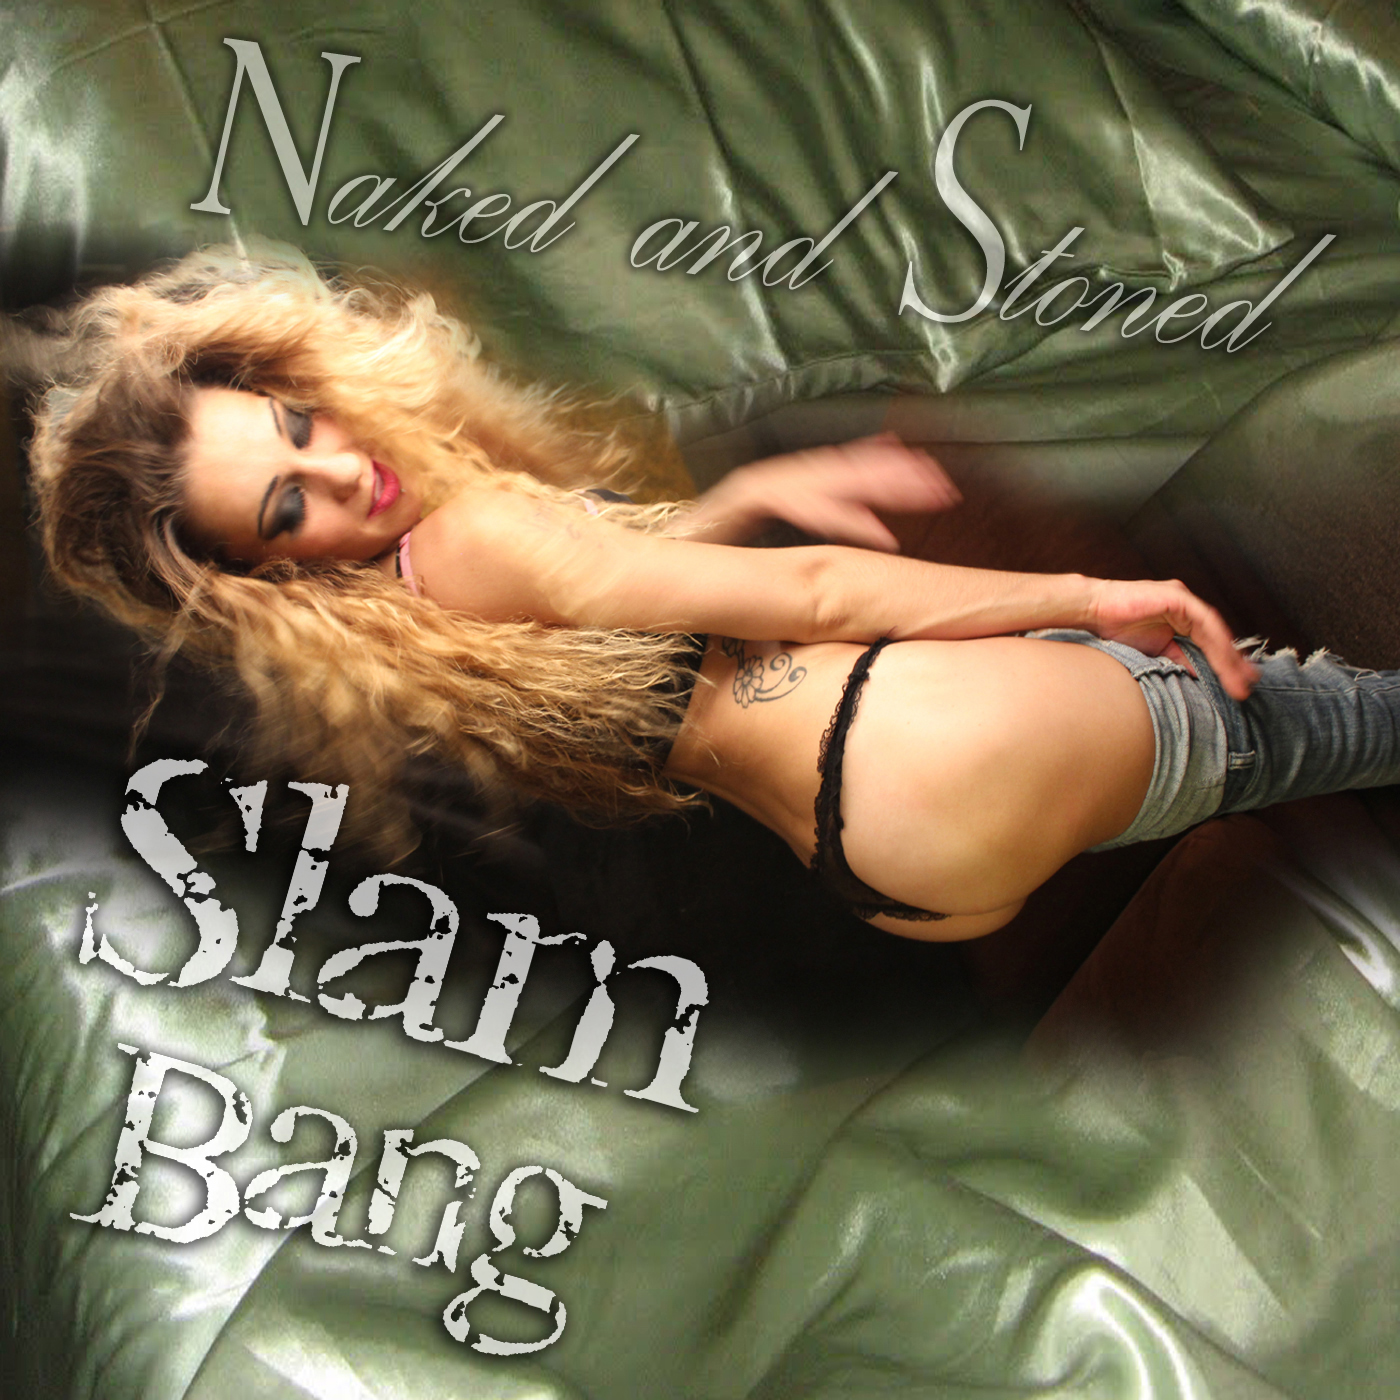 Naked and Stoned by Slam Bang